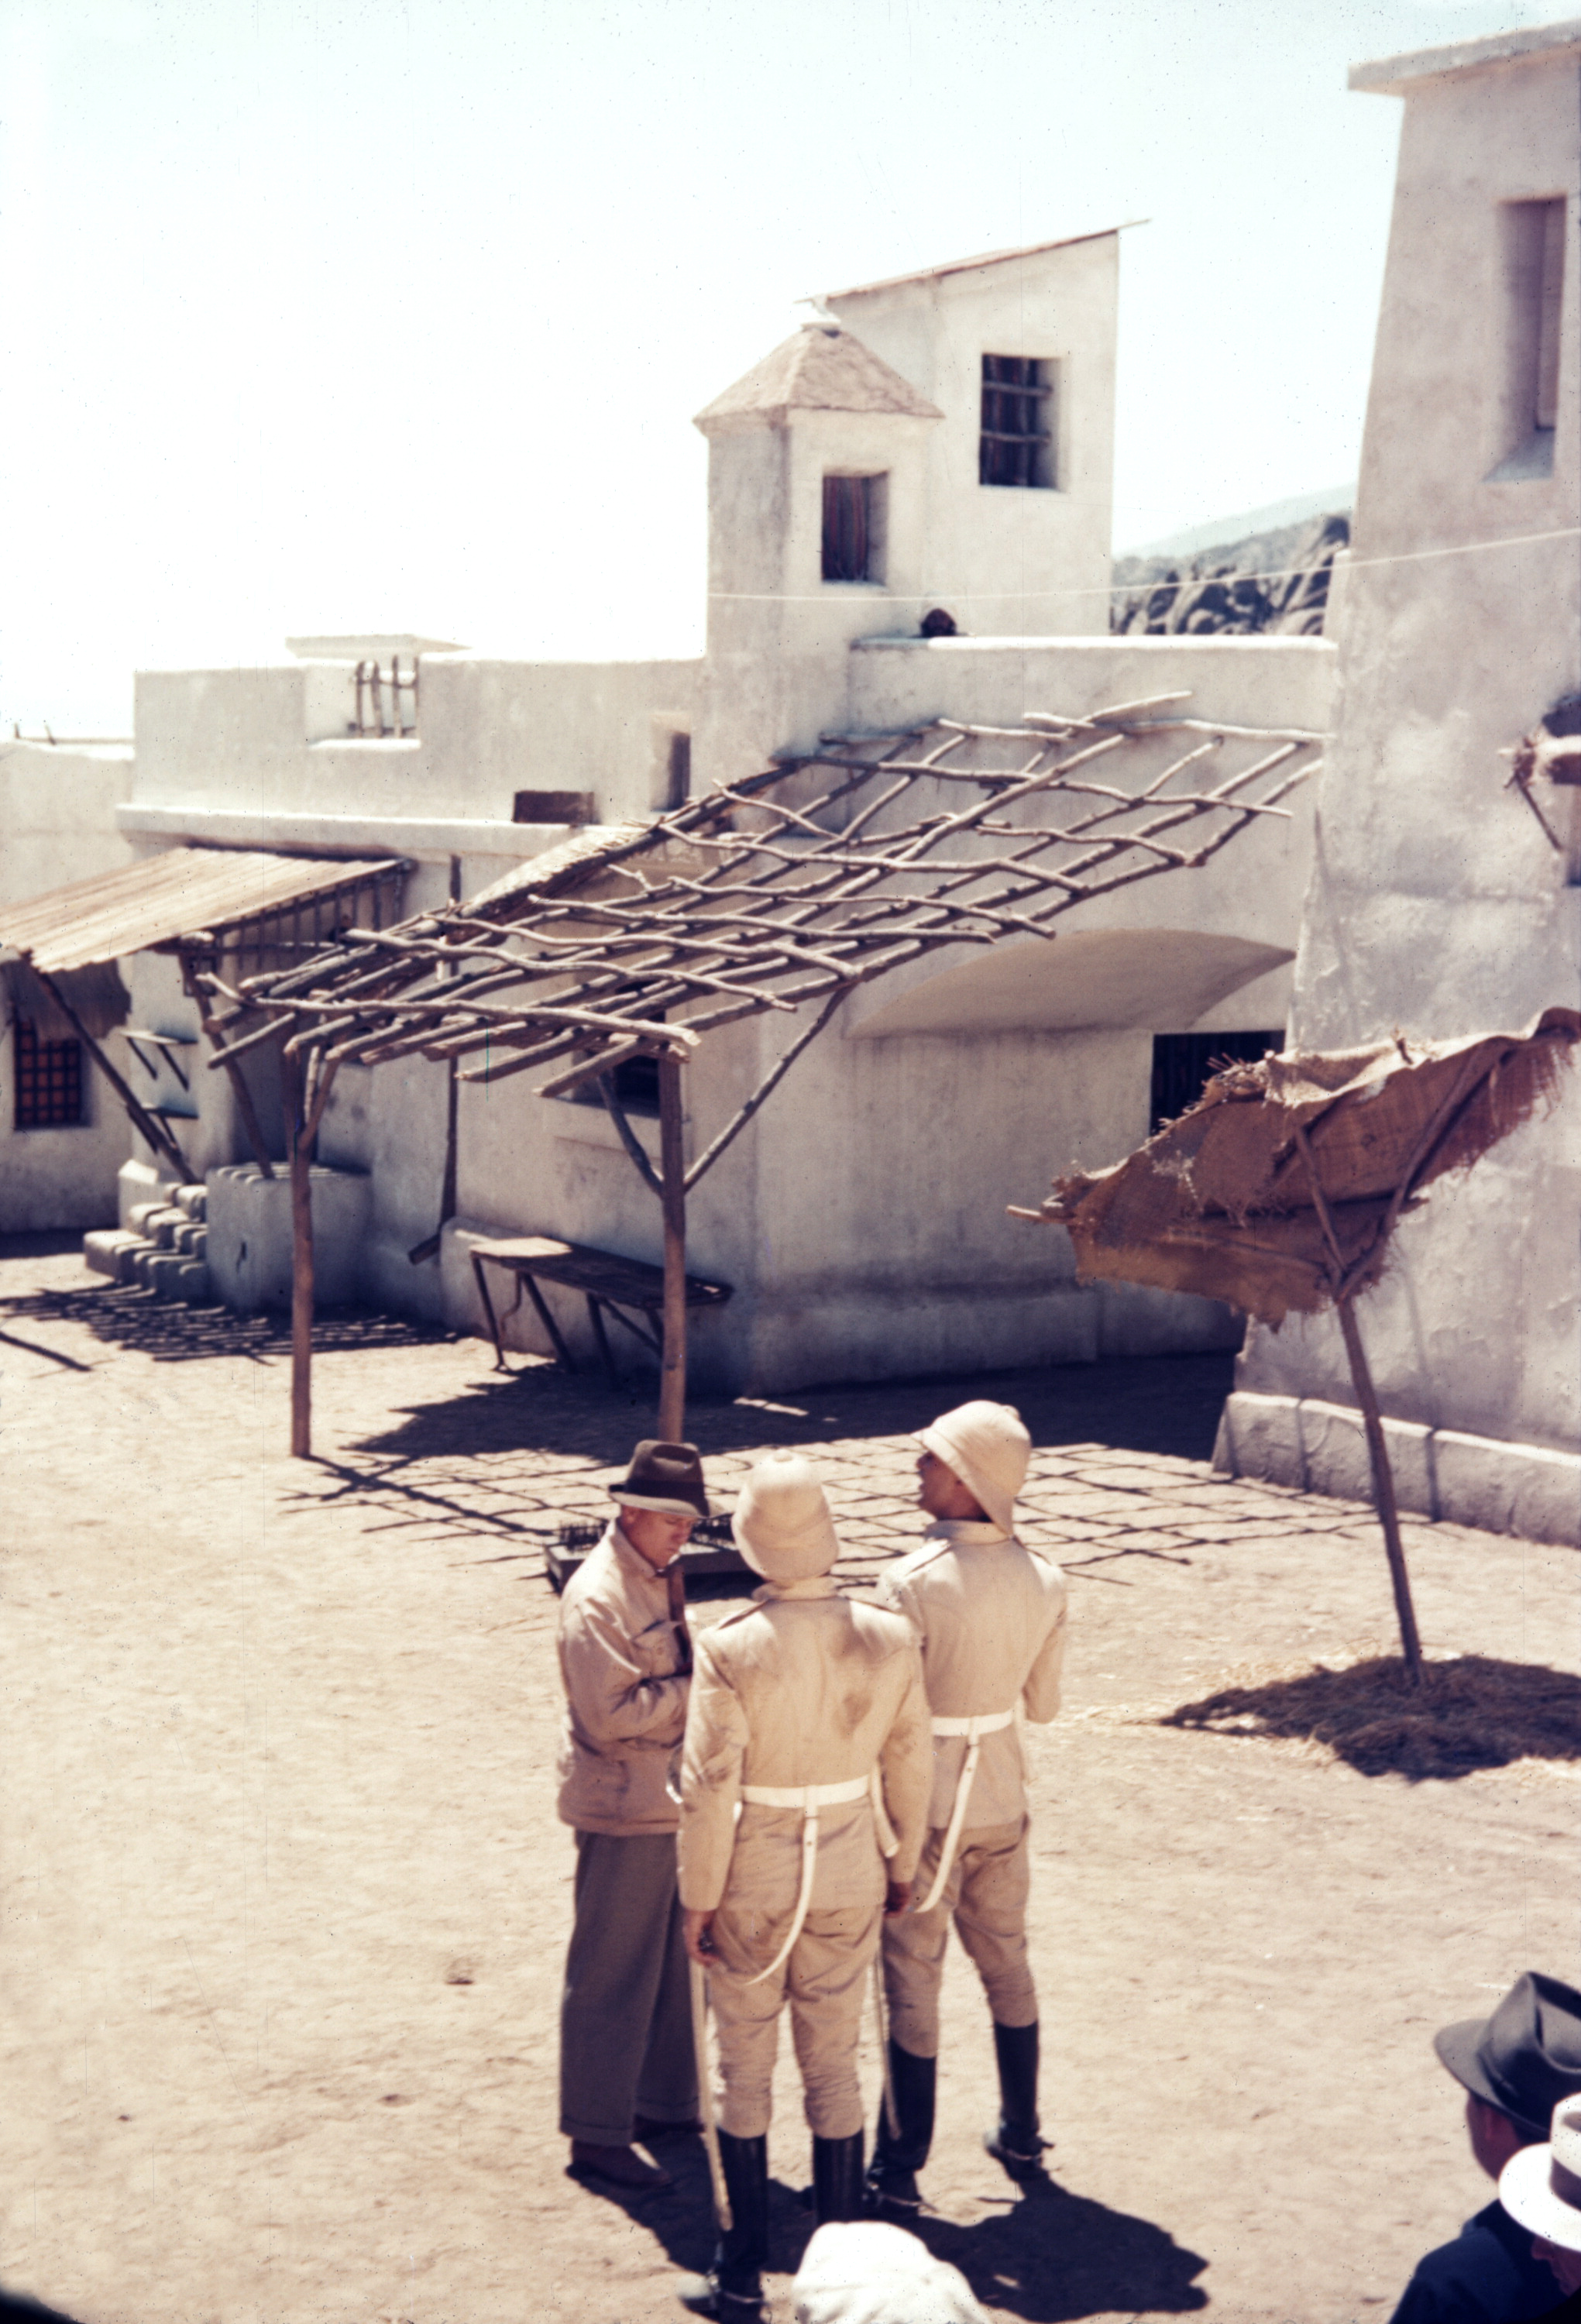 George Stevens (left) converses with Douglas Fairbanks Jr. and Cary Grant on location. (Copyright The Academy of Motion Picture Arts and Sciences)